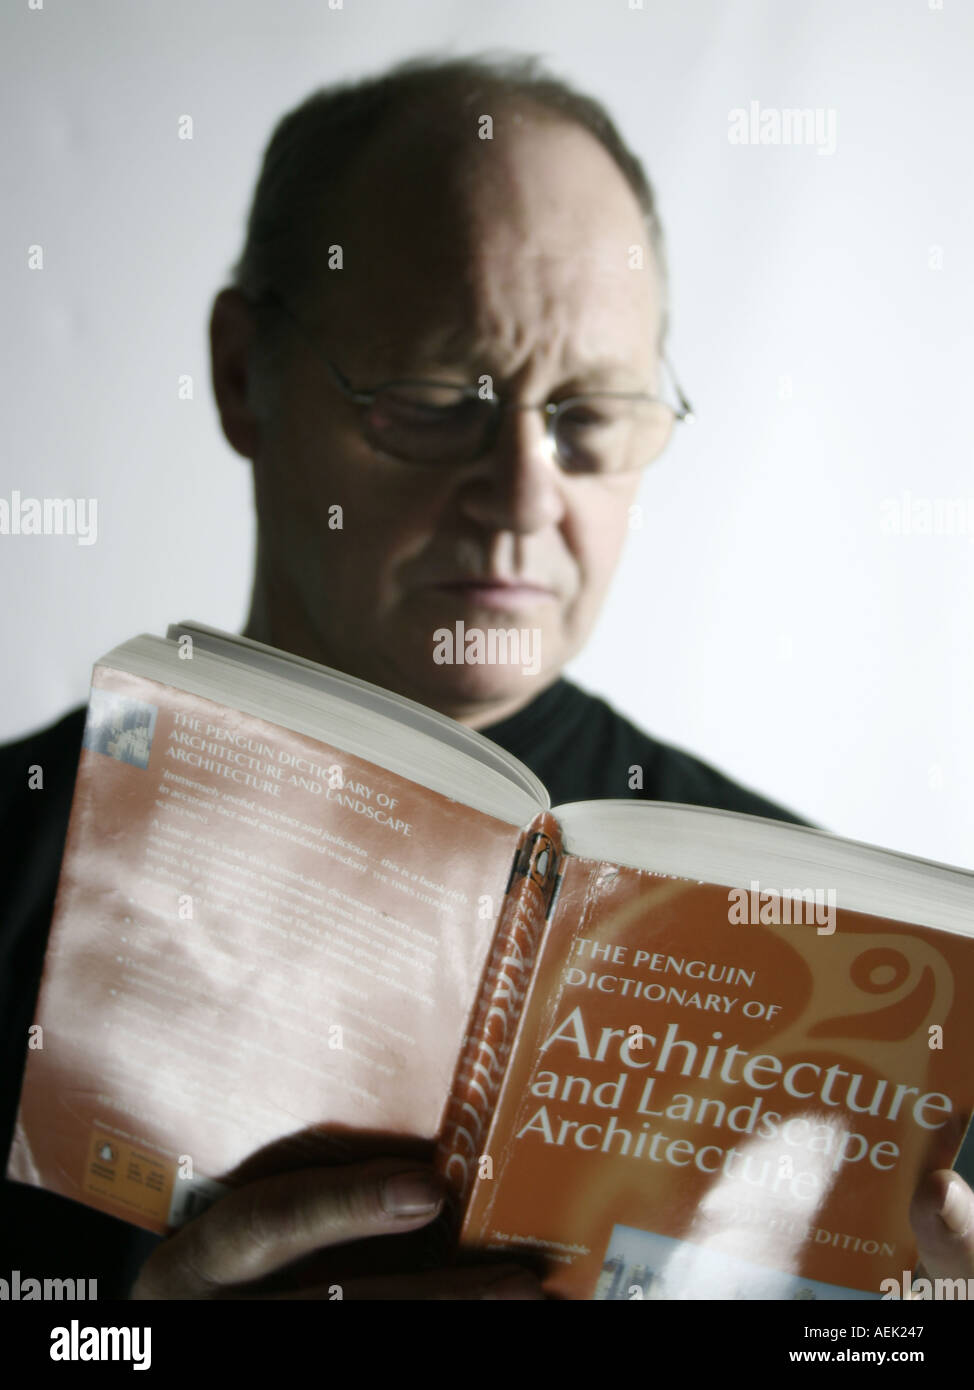 Man aged sixty reading an architecture book